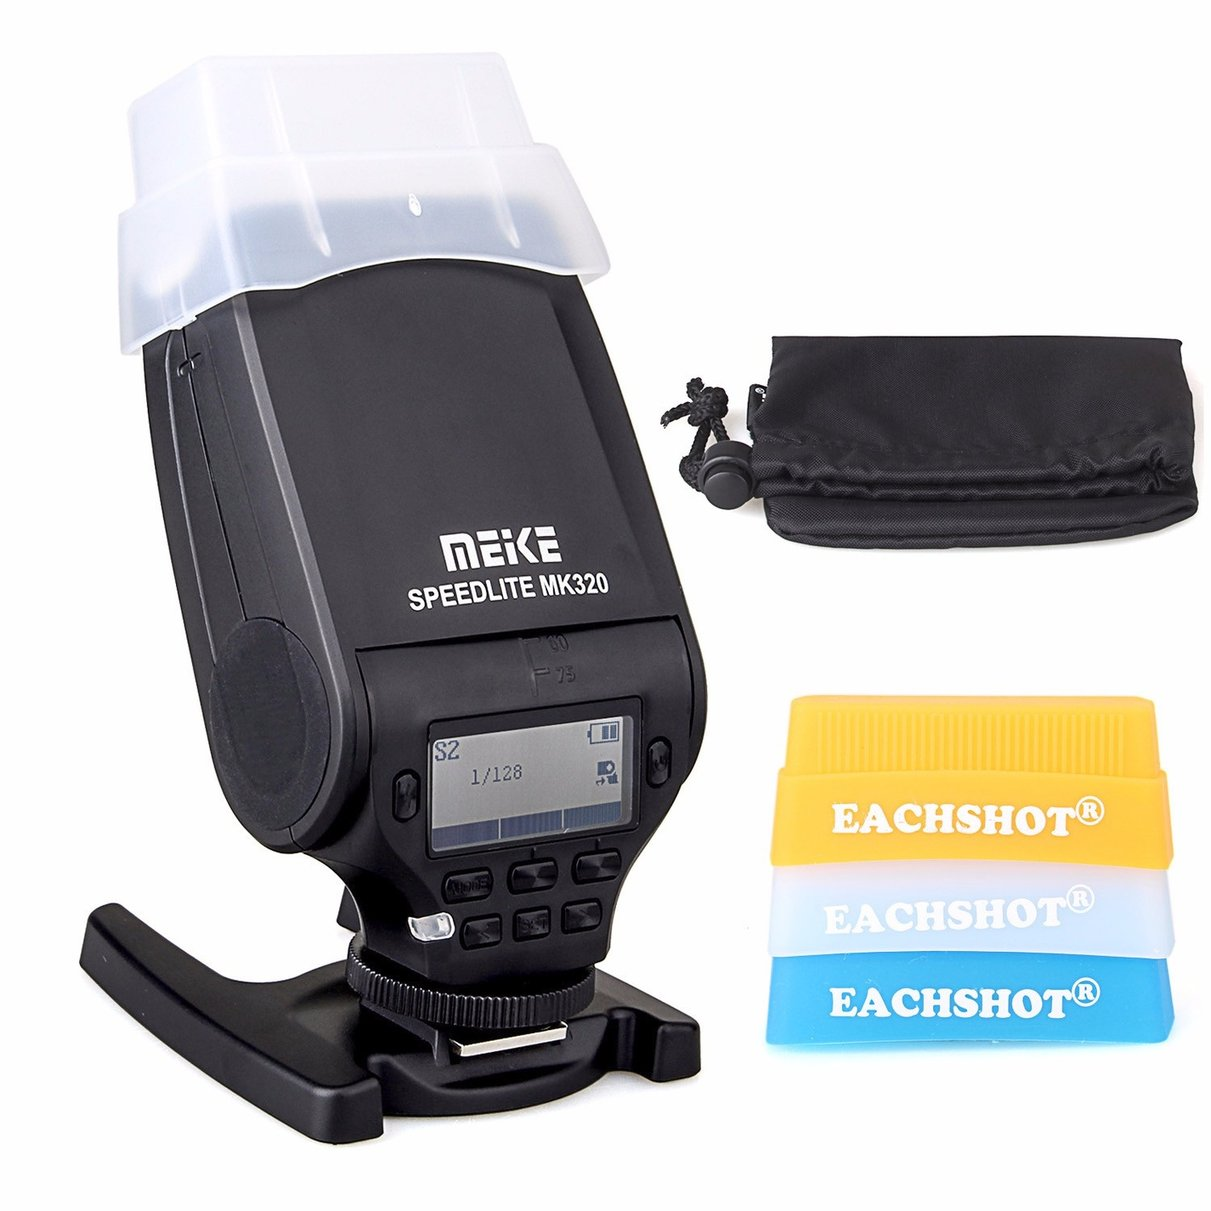 MEIKE MK-320 TTL flash Speedlite + RM-VPR1 remote control for Sony A7 A7R A7S A7 II A77 II A6000 A58 RX1 RX100 II RX100 III wireless video timer remote control commander with multi terminal cable replace rm vpr1 for sony a7 ii iii a6500 a6300 rx100 m5